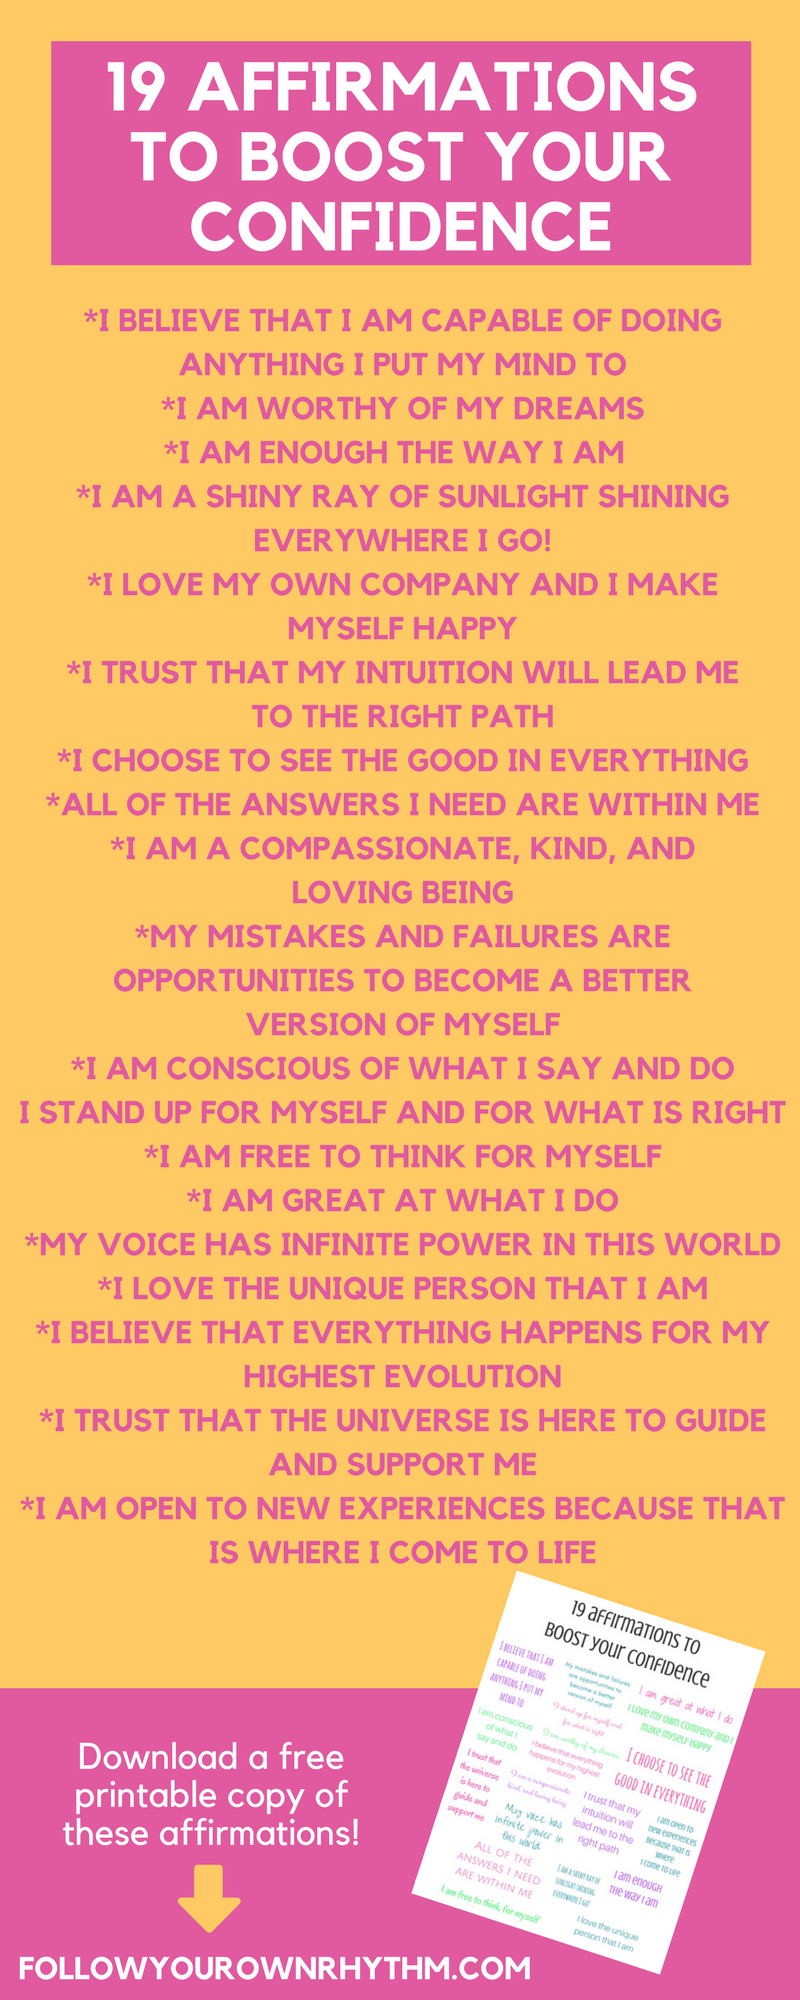 1. I believe that I am capable of doing anything I put my mind to2. I am worthy of my dreams3. I am enough the way I am 4. I am a shiny ray of sunlight shining everywhere I go!5. I love my own company and I make myse.png